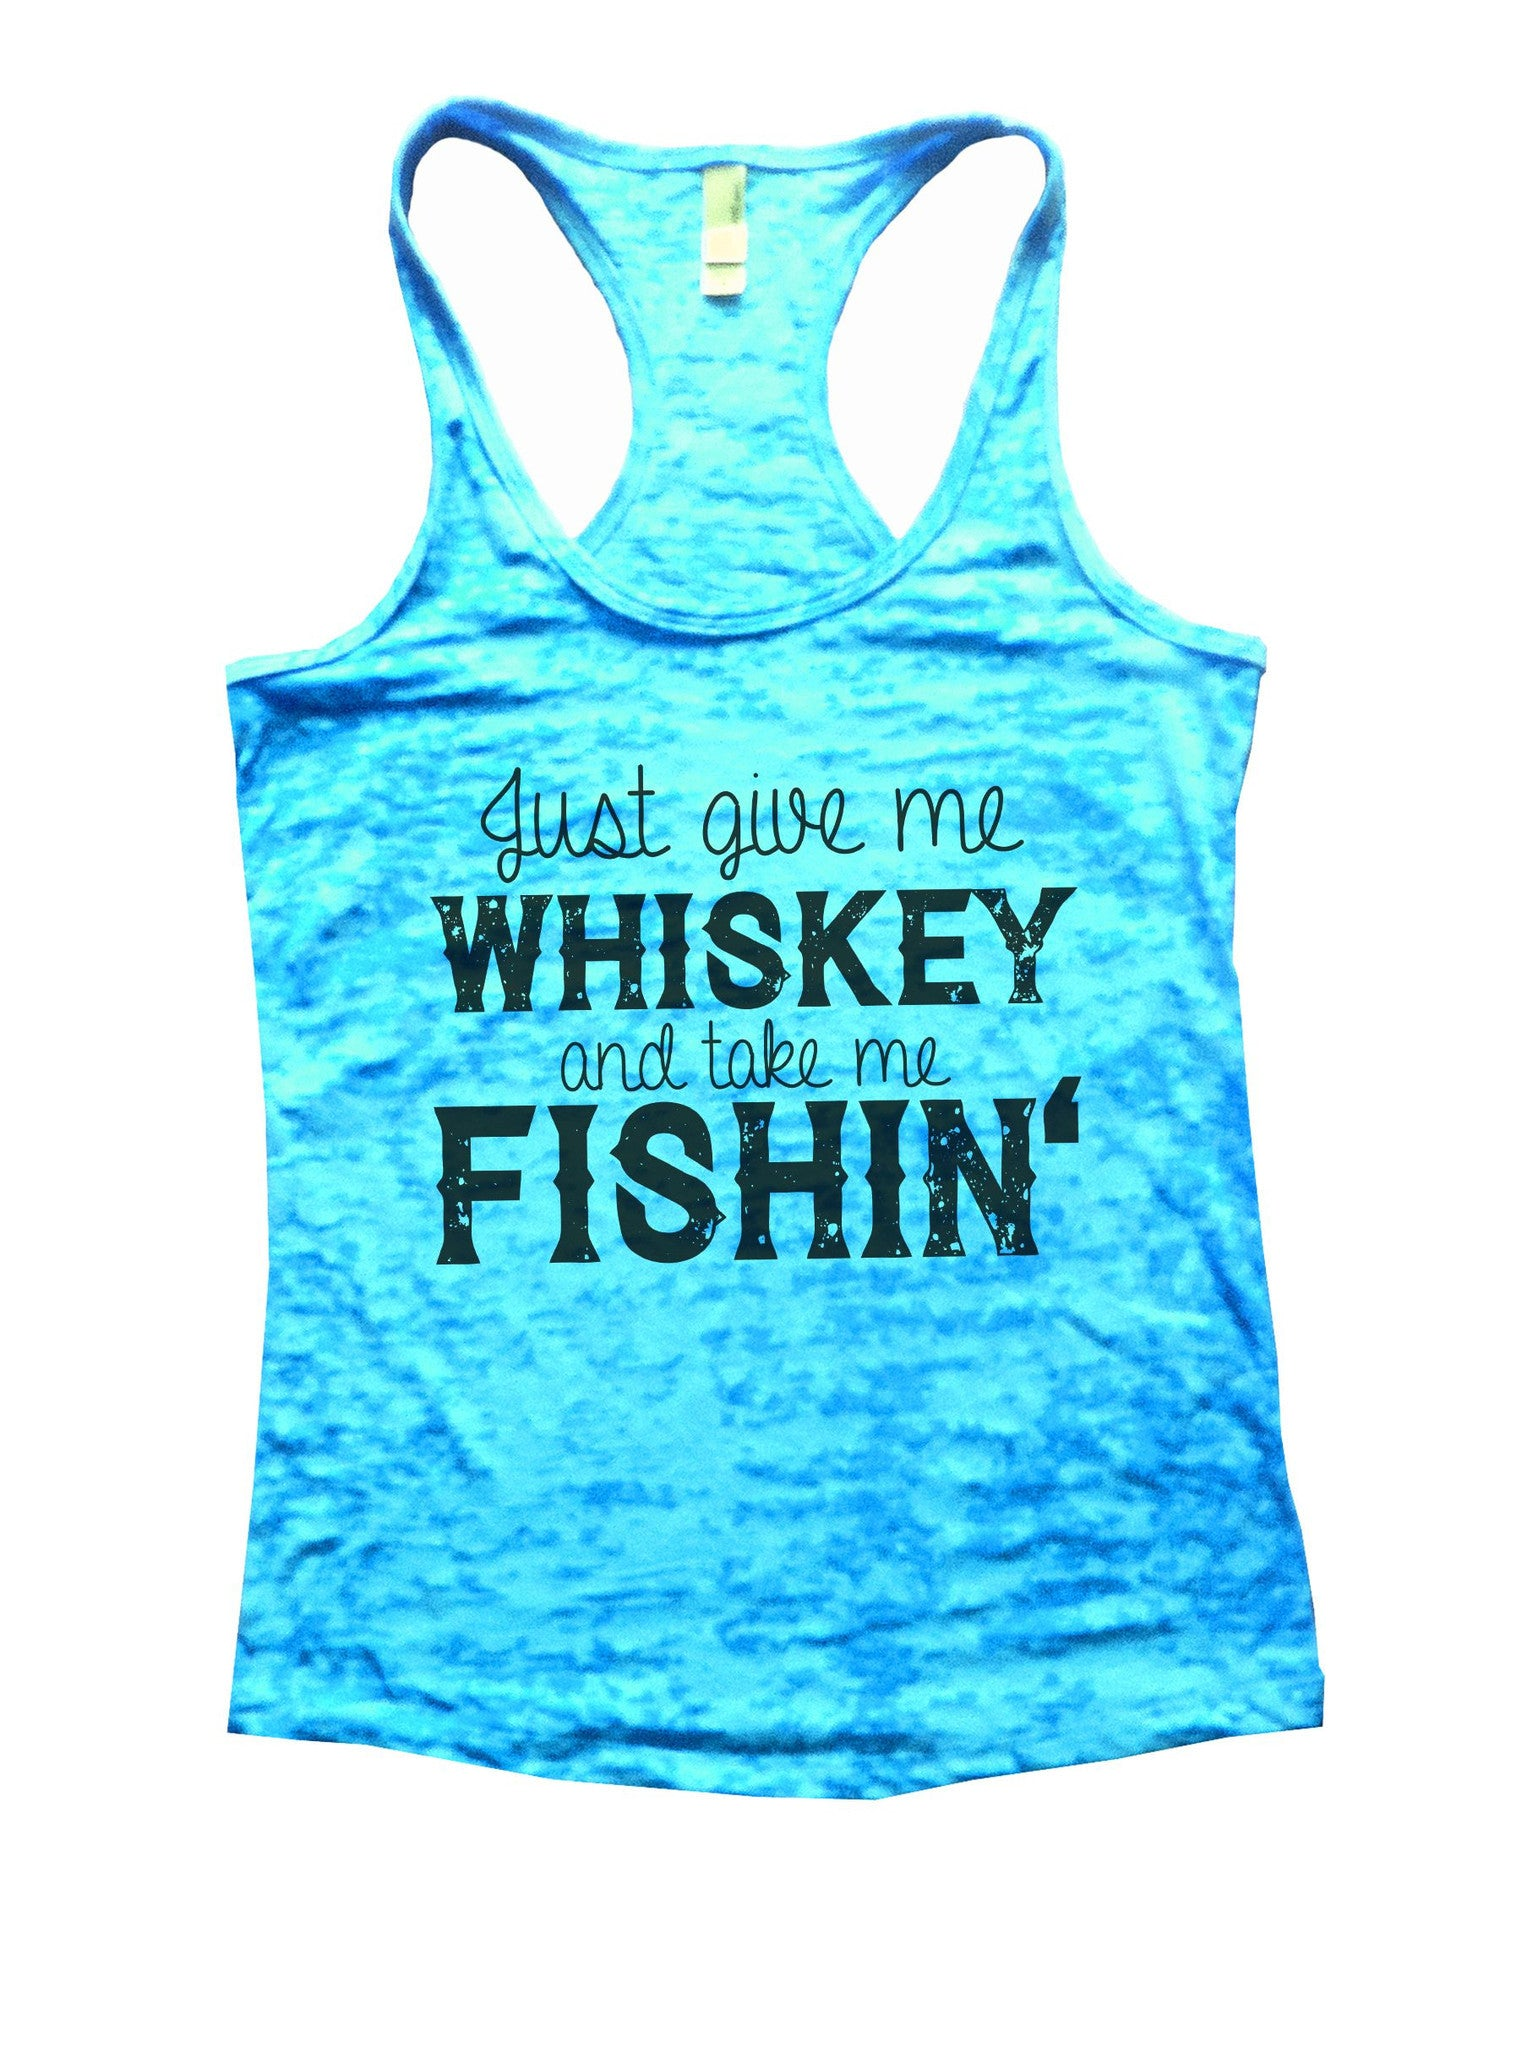 Just Give Me Whiskey And Take Me Fishin Burnout Tank Top By BurnoutTankTops.com - 1012 - Funny Shirts Tank Tops Burnouts and Triblends  - 4